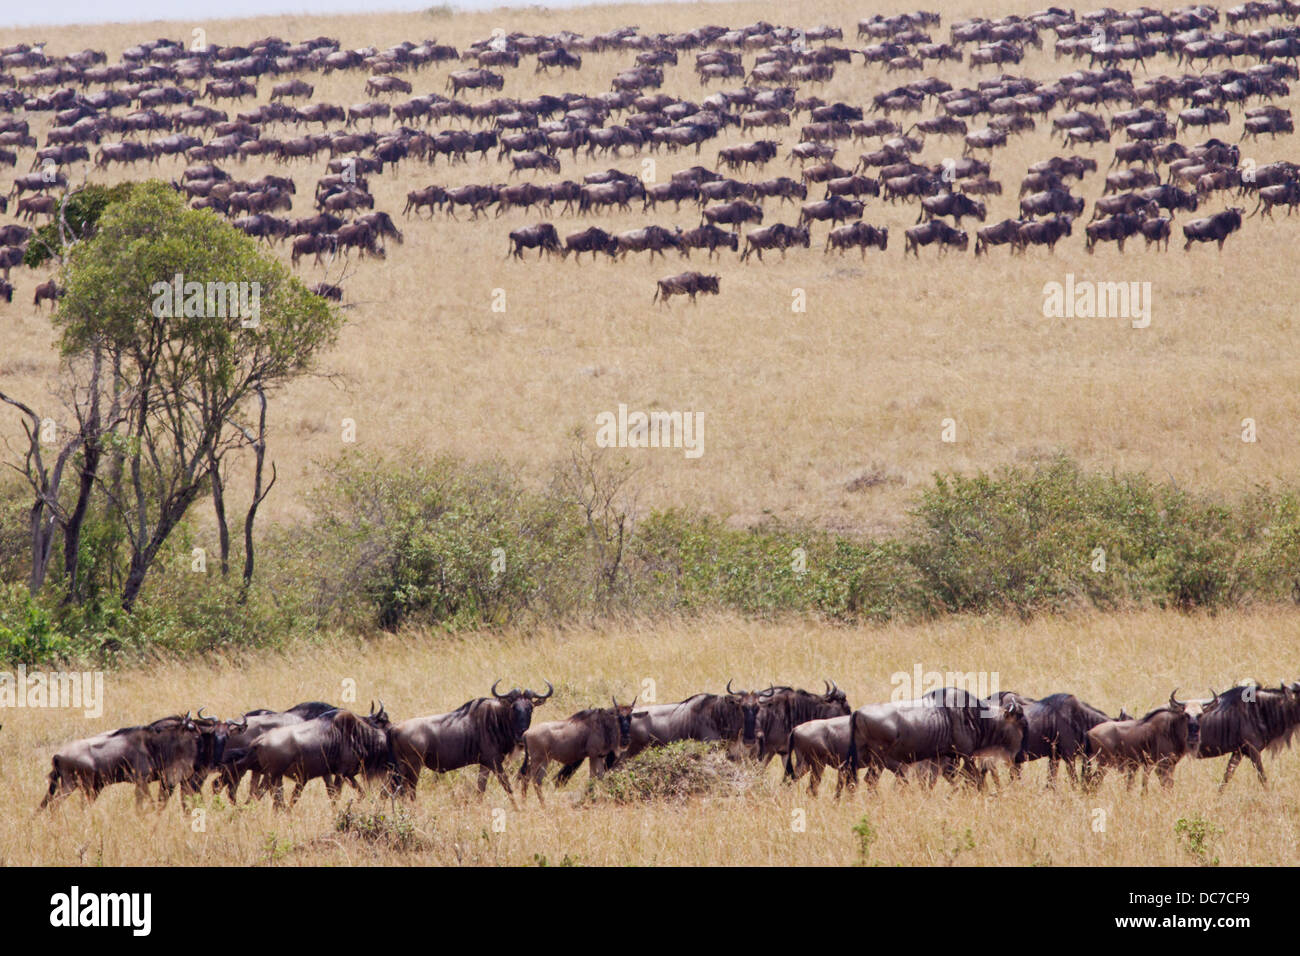 The great migration. - Stock Image